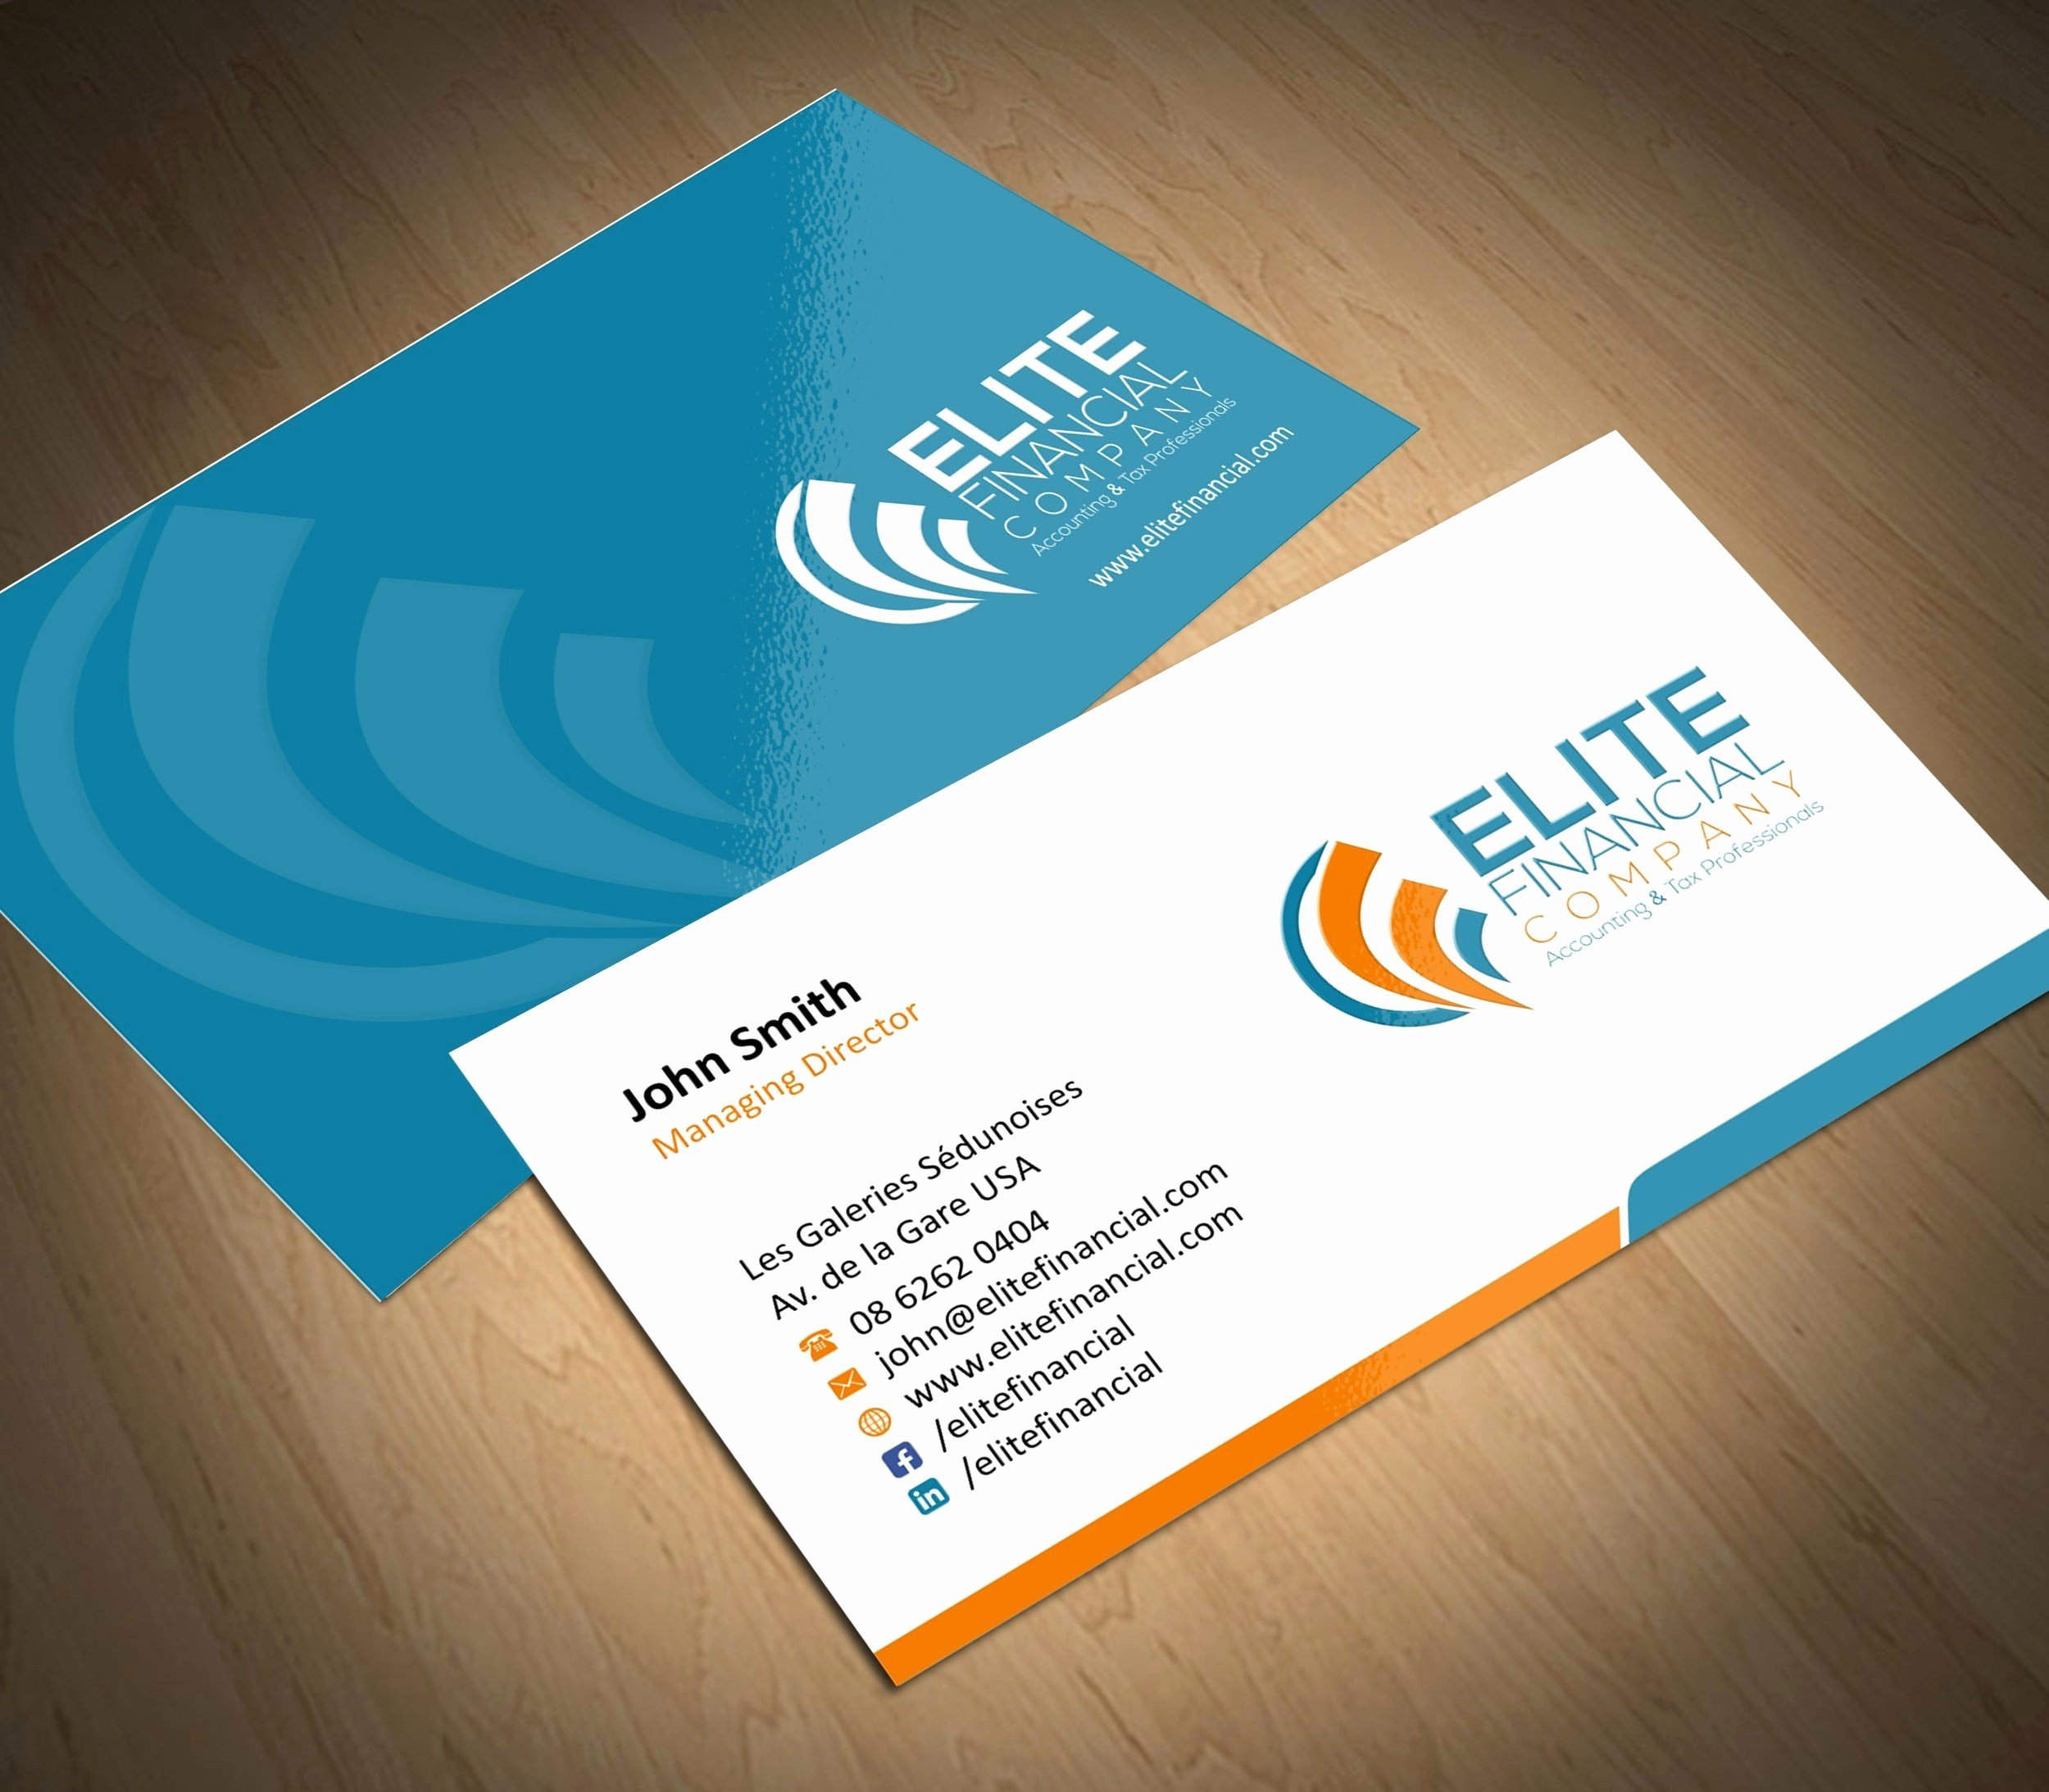 Staples Business Cards Template Lovely Staples Business Card Printing Awesome Local Business